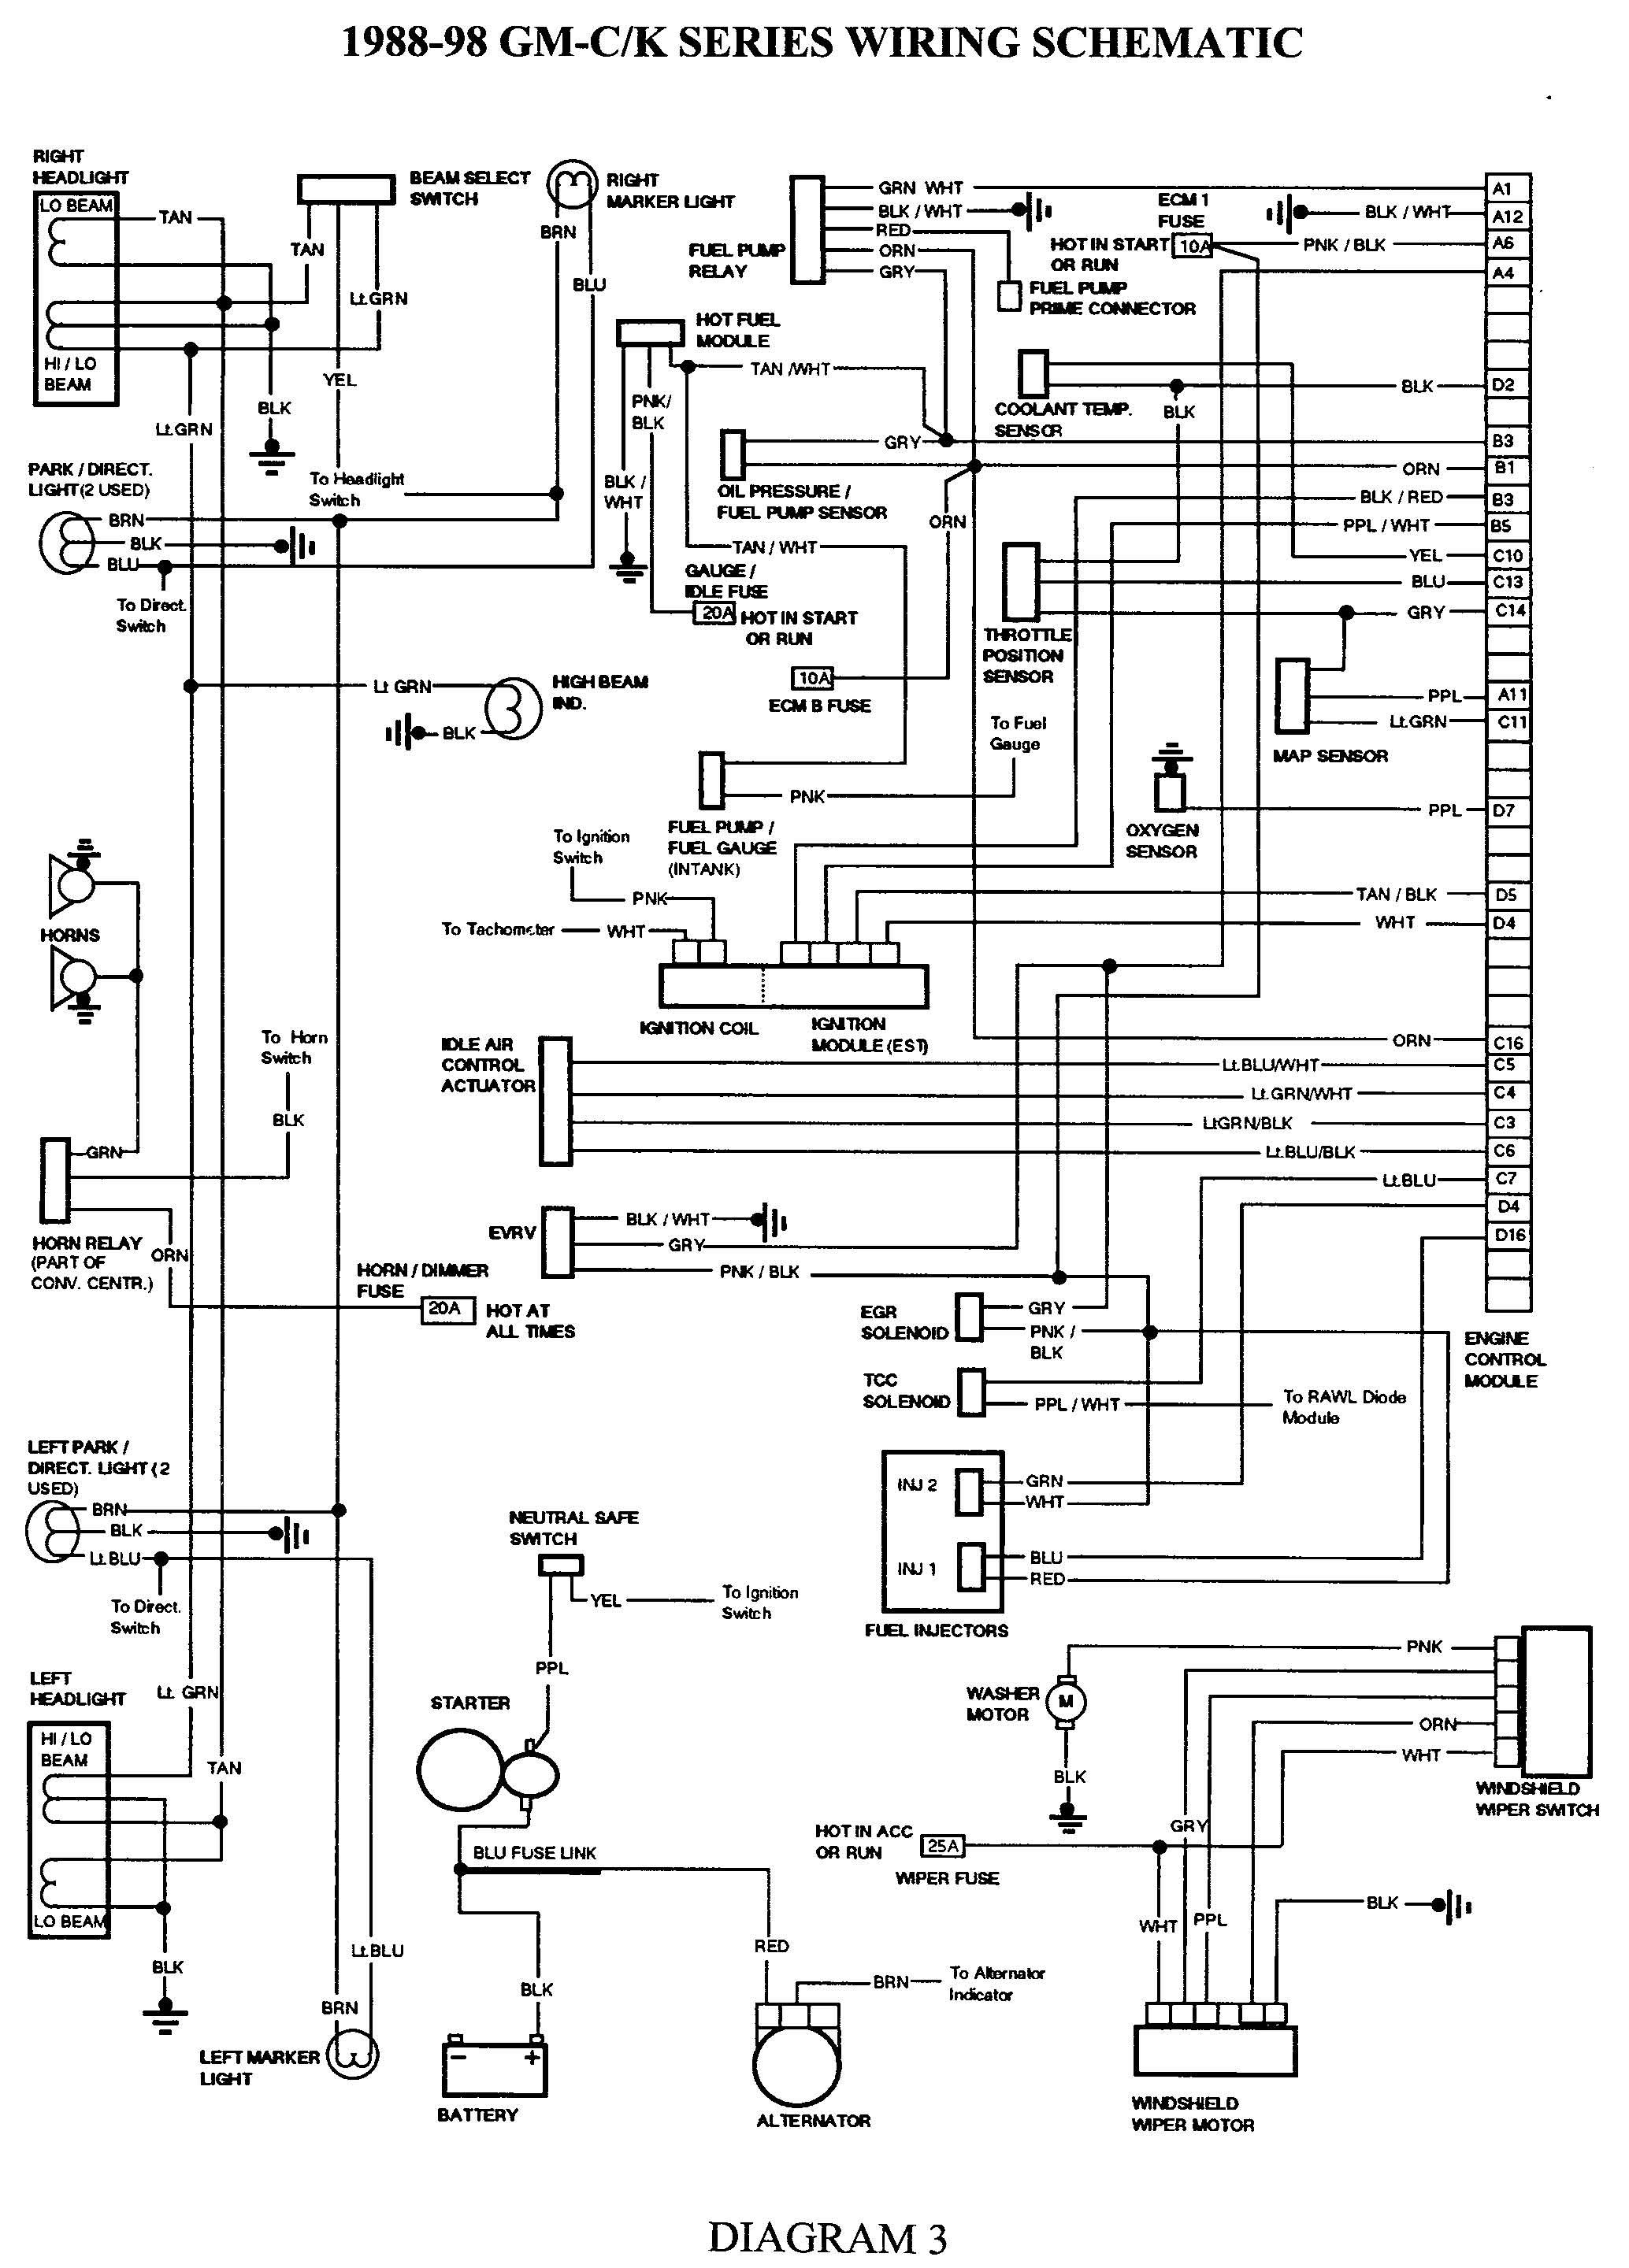 agm alternator wiring diagram wiring libraryagm alternator wiring diagram [ 2068 x 2880 Pixel ]